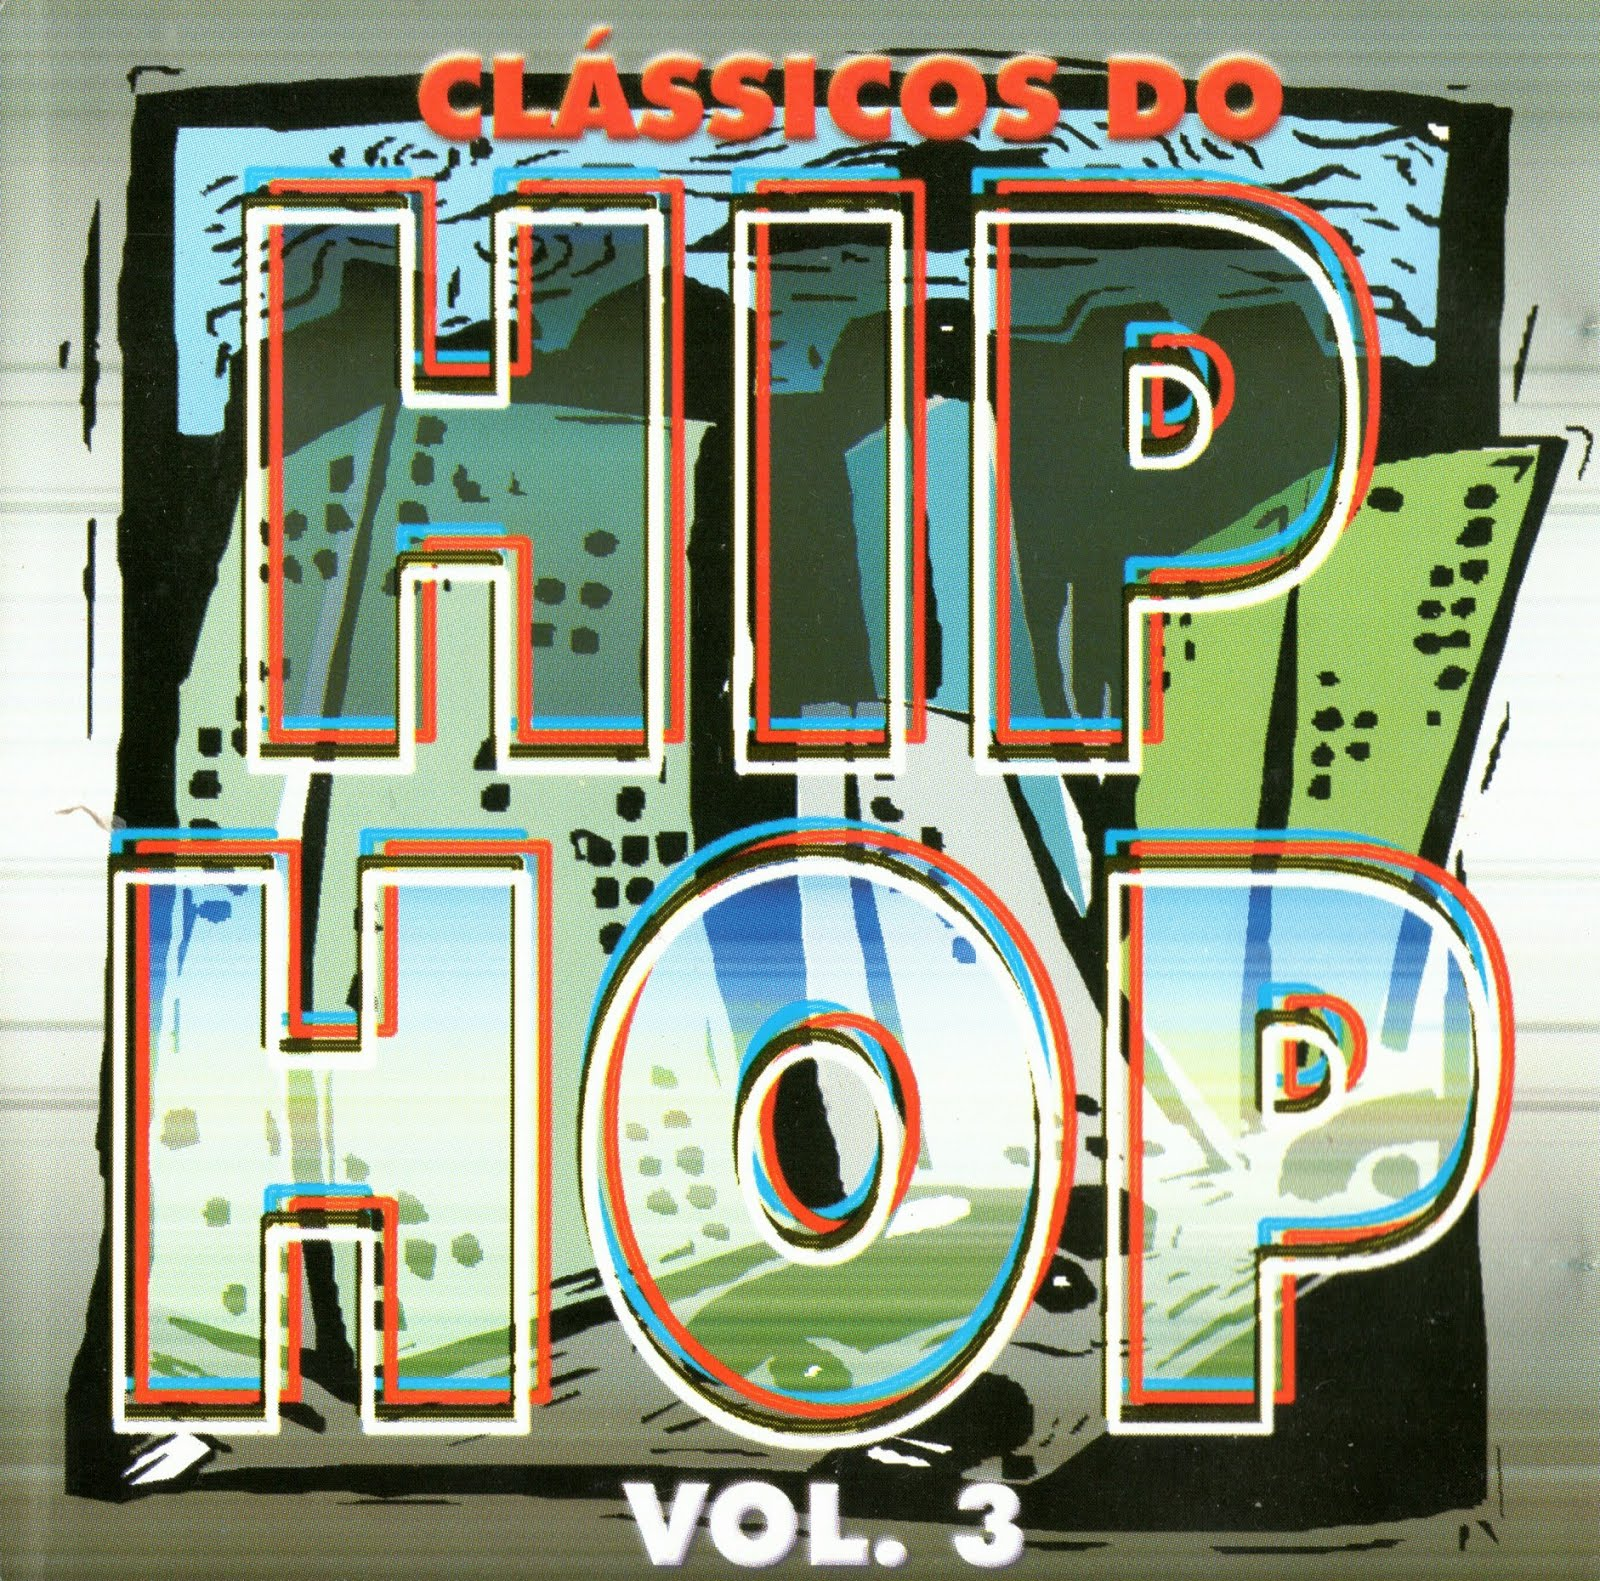 CLASSICOS DO HIP HOP VOL. 3